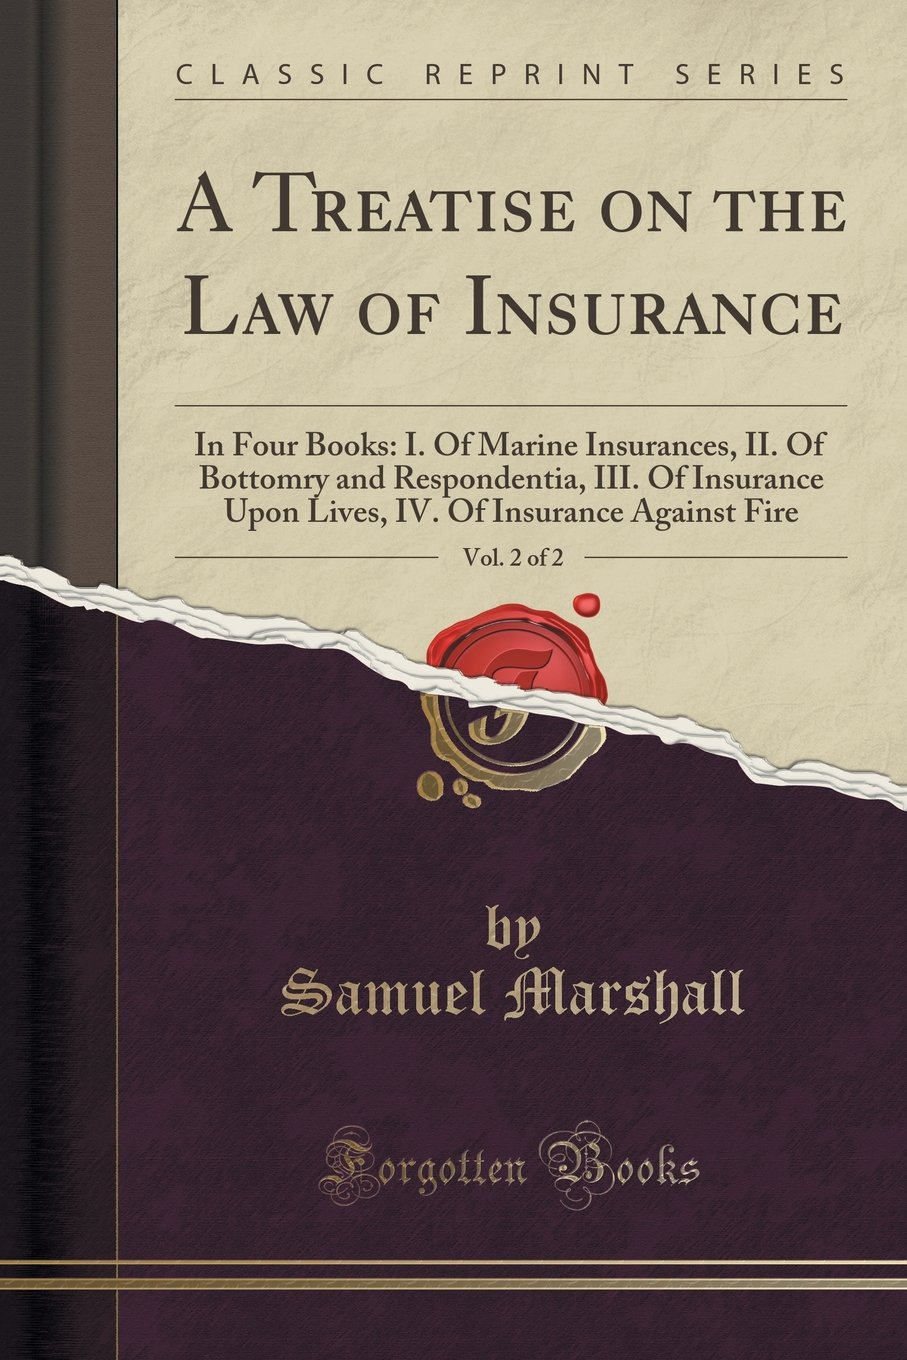 Read Online A Treatise on the Law of Insurance, Vol. 2 of 2: In Four Books: I. Of Marine Insurances, II. Of Bottomry and Respondentia, III. Of Insurance Upon Lives, IV. Of Insurance Against Fire (Classic Reprint) pdf